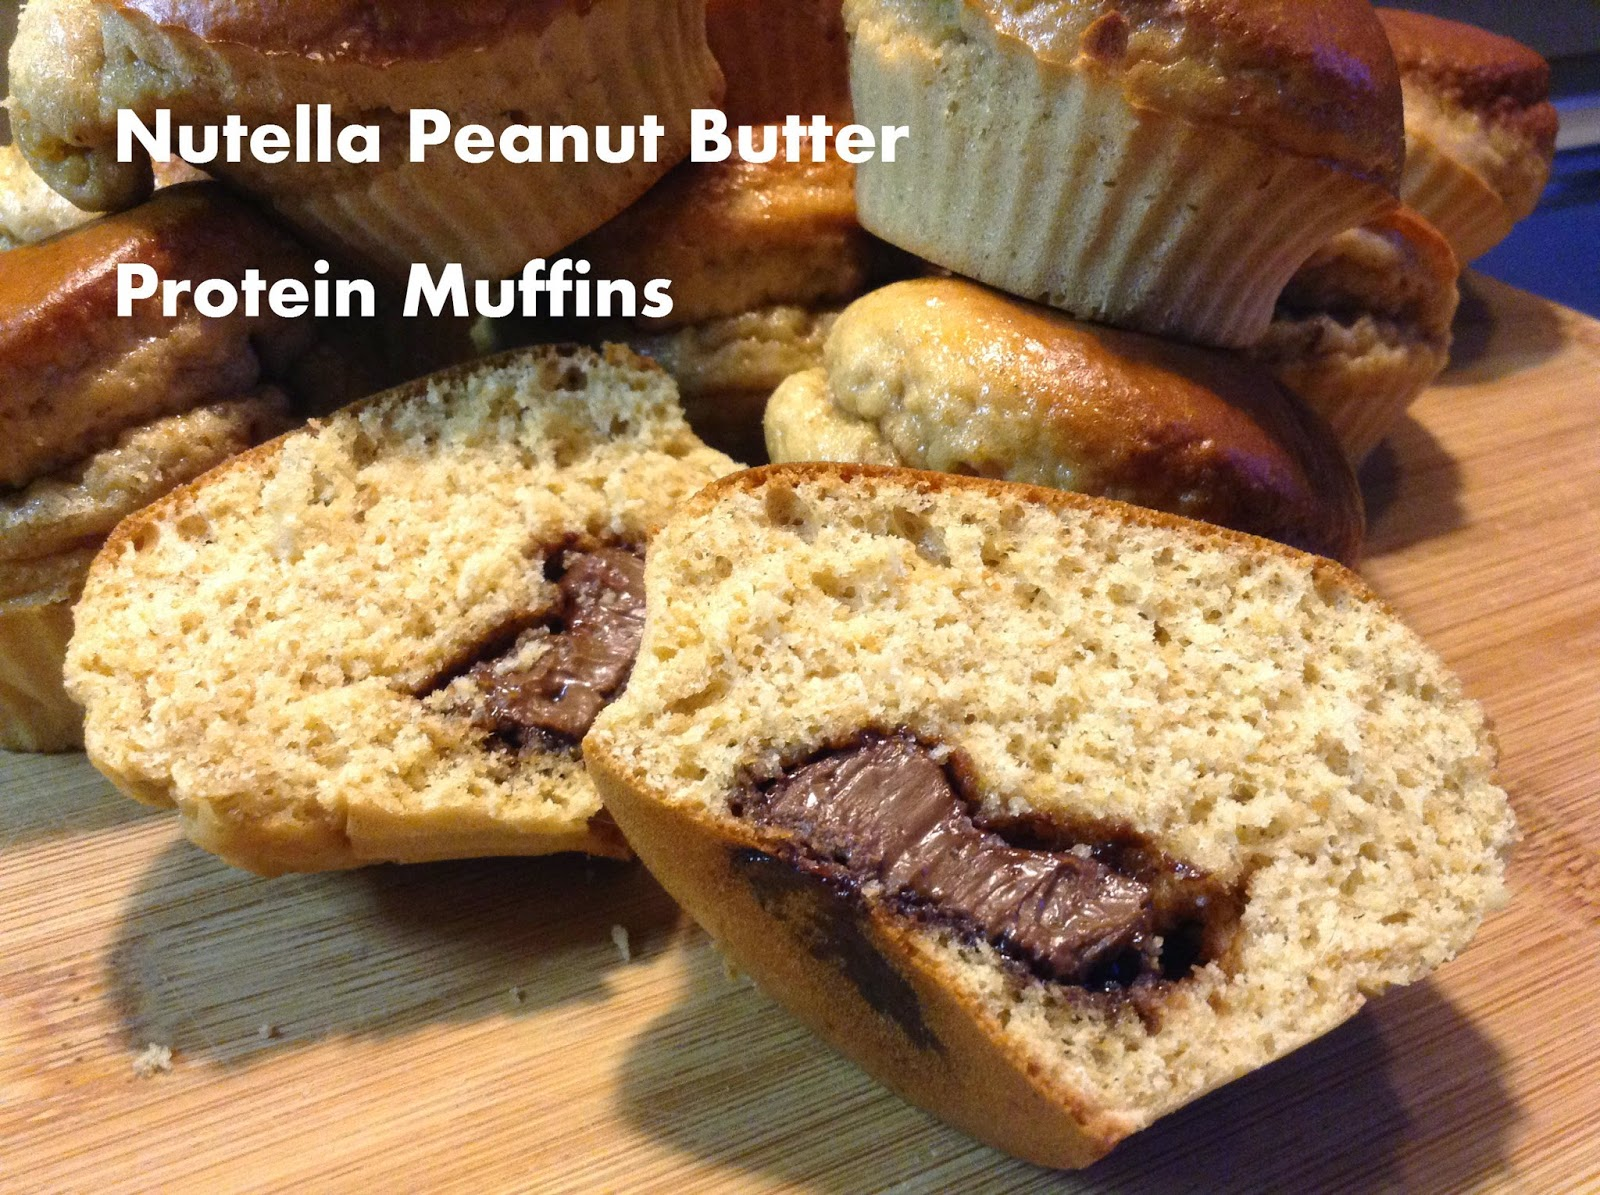 Bruises and Calluses: Nutella Peanut Butter Protein Muffins